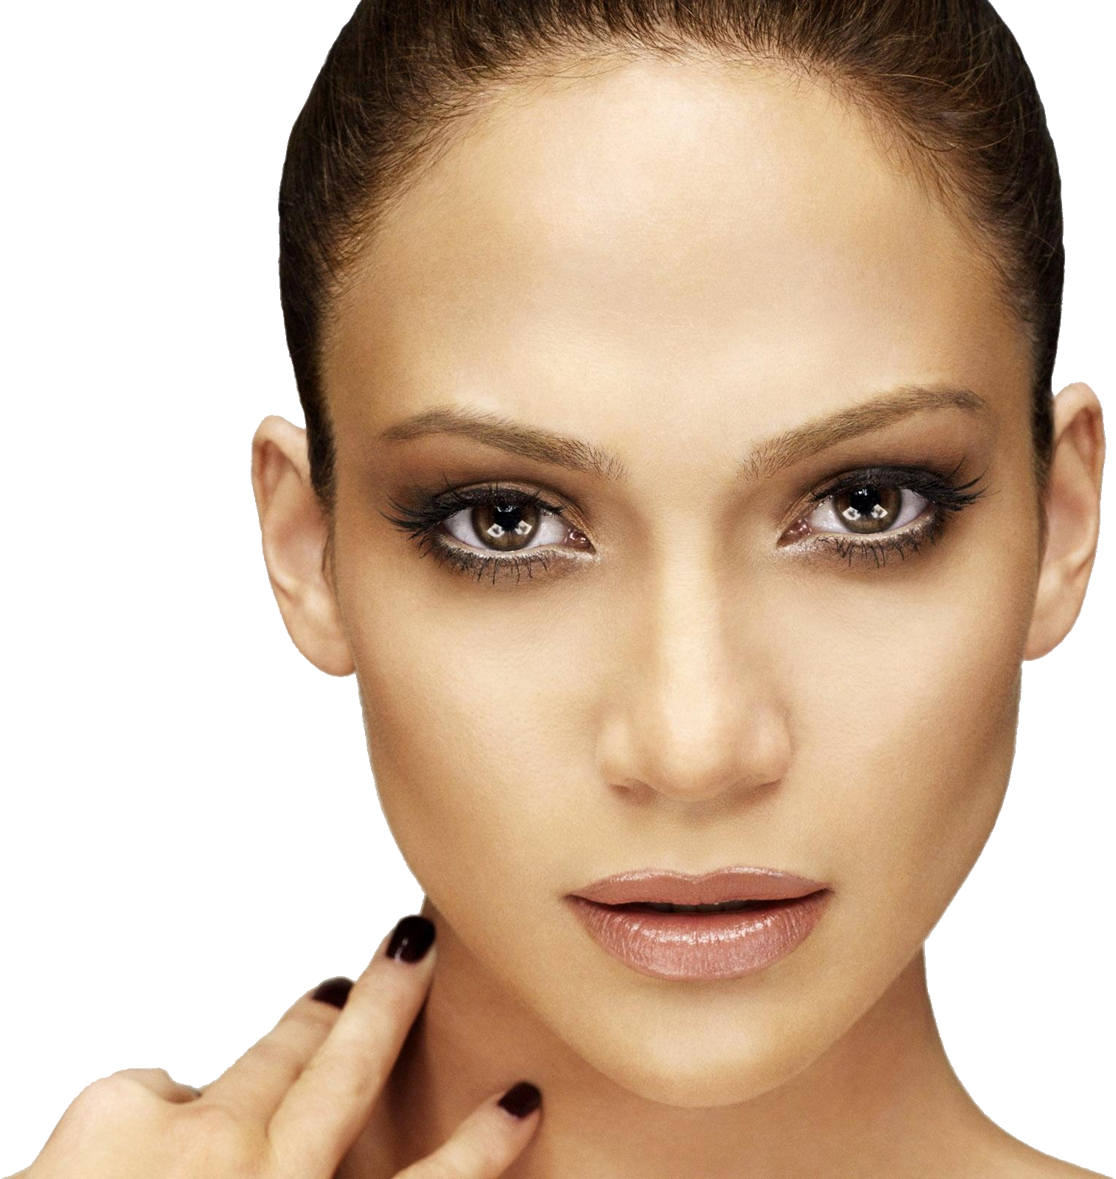 Png image without background. Faces clipart woman's face